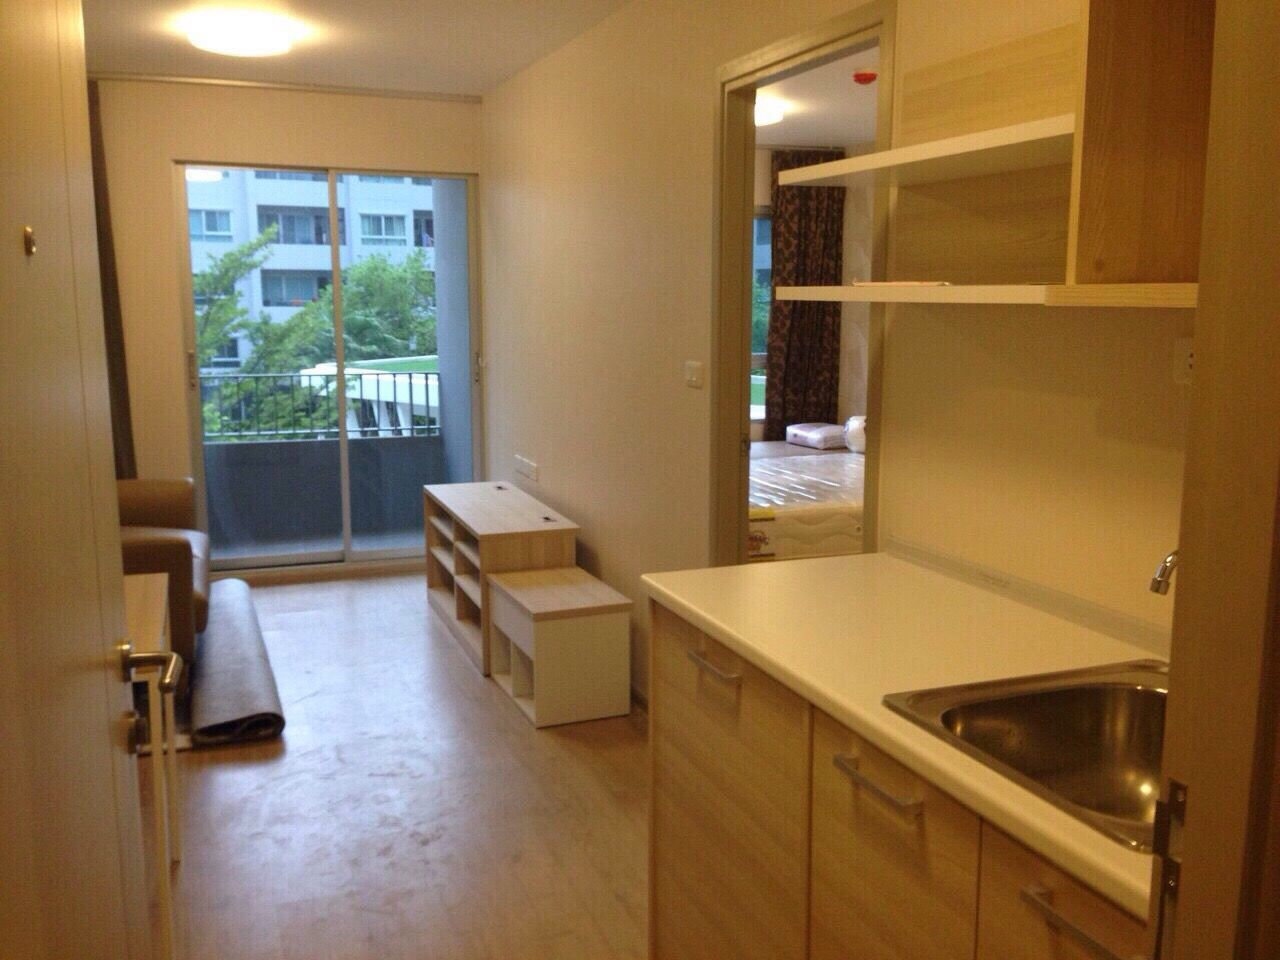 Condominium Thailand Modern Basin No People, Indoors Wide Shot Kitchen Area Cabinet Tap Clean Modern Design